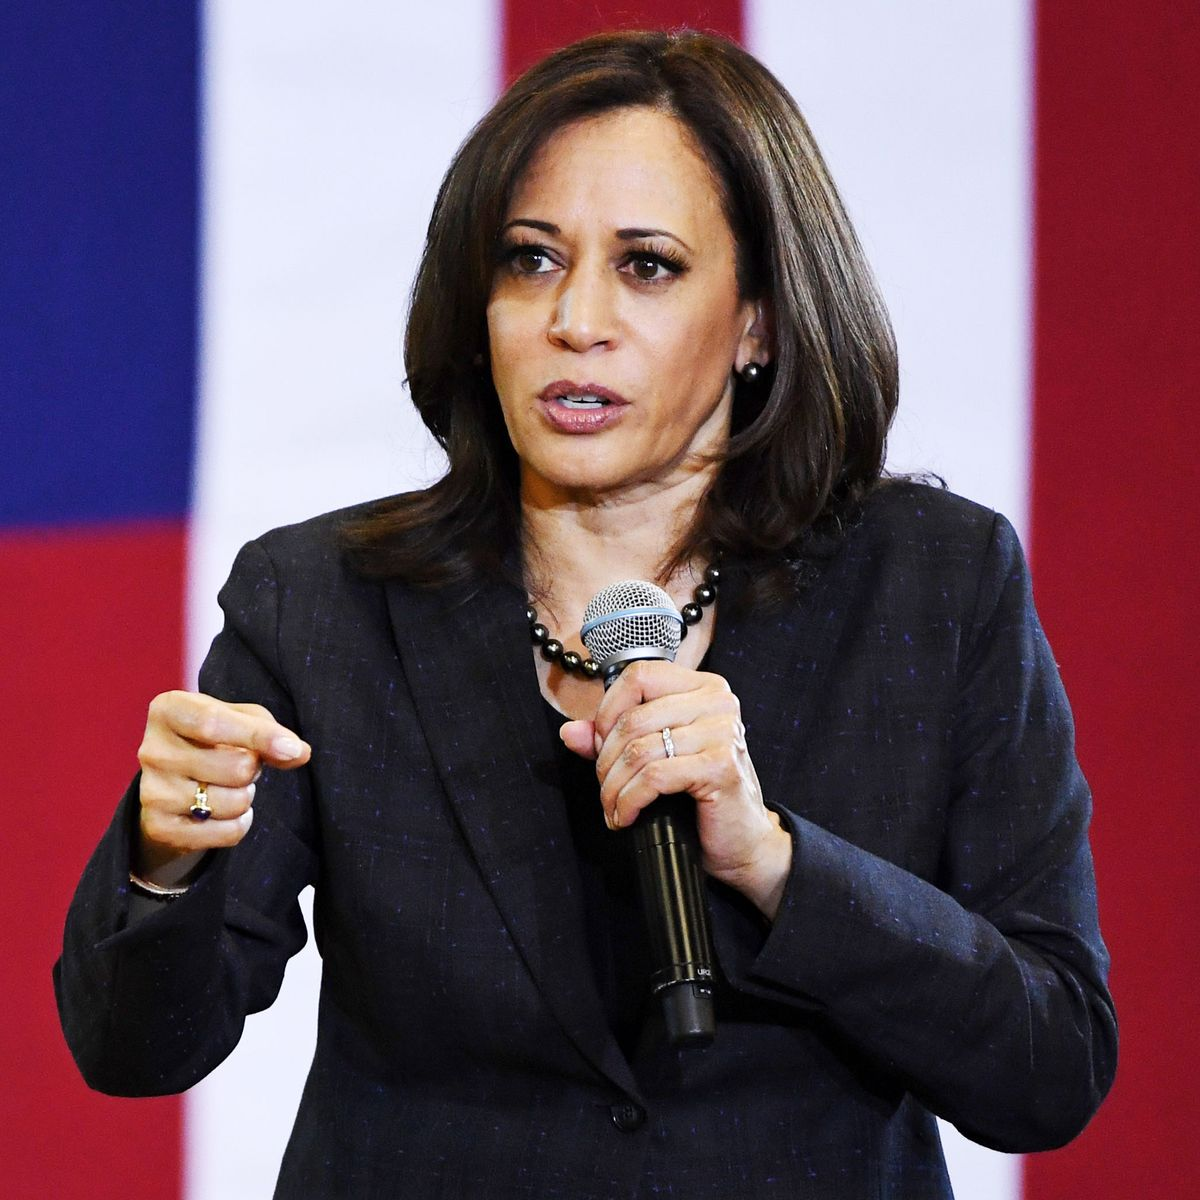 Kamala Harris Views And Policies A Full Guide